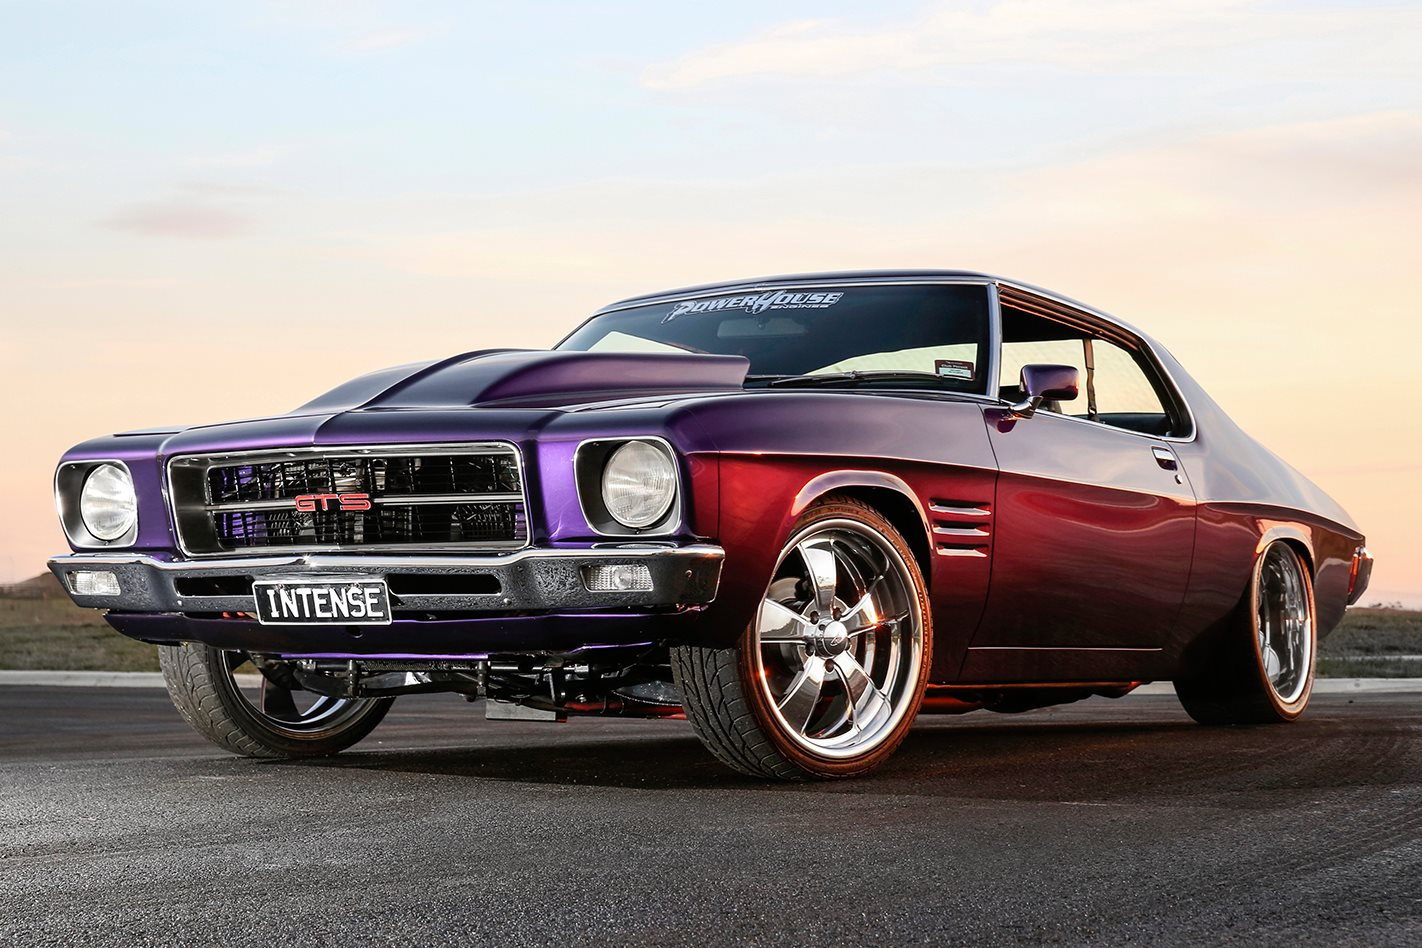 540-CUBE BIG-BLOCK 1971 HOLDEN HQ MONARO GTS - INTENSE ...